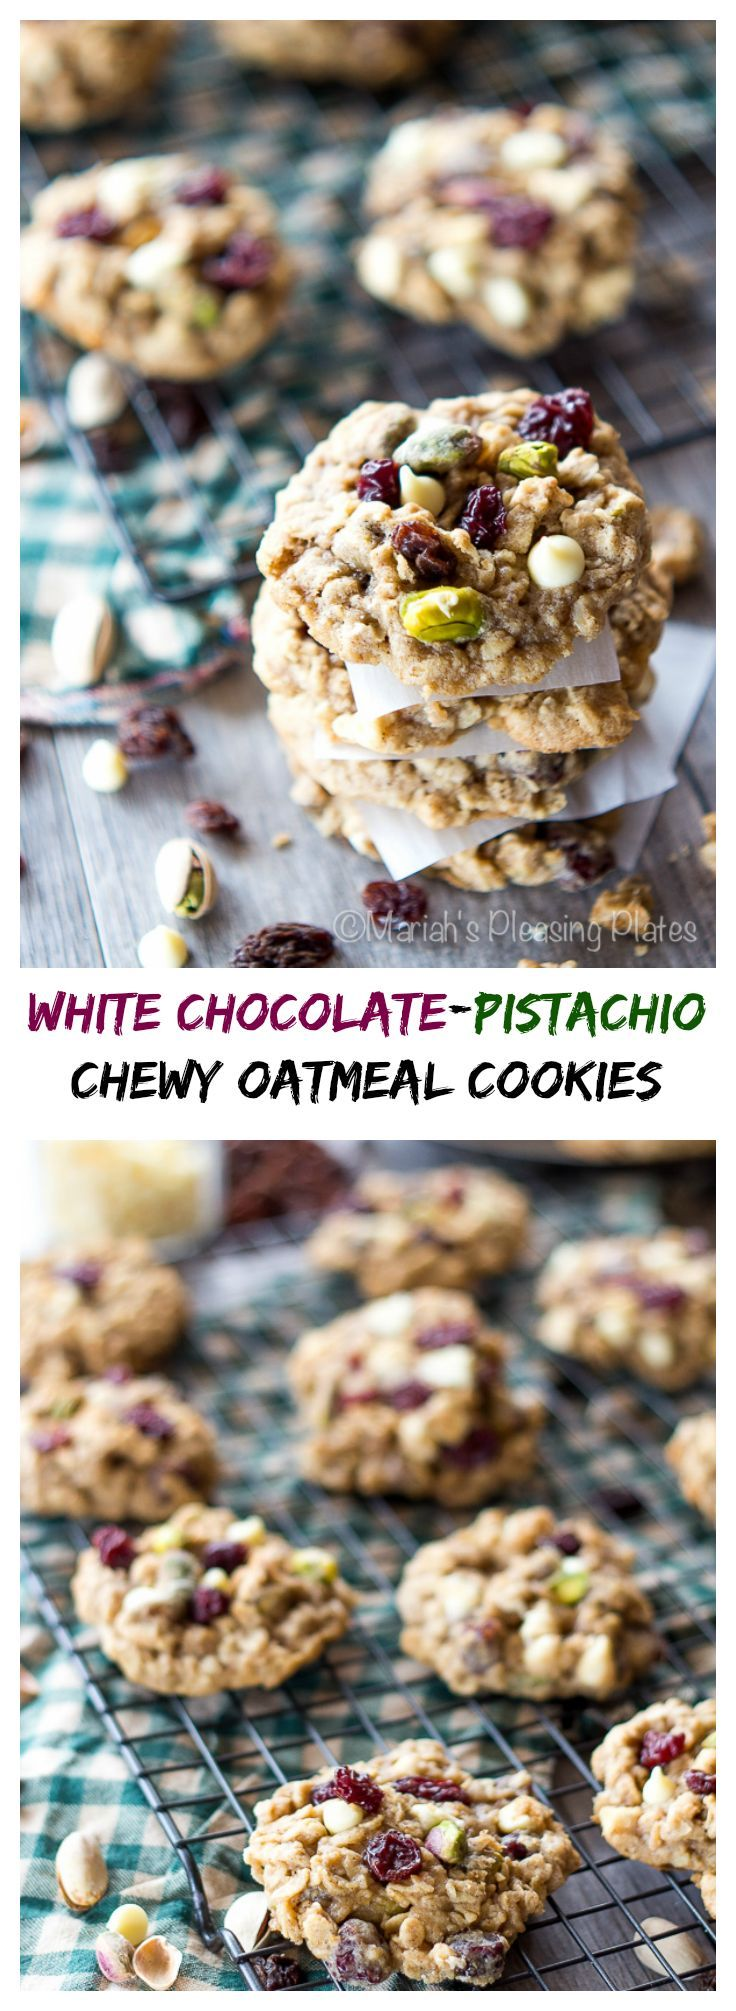 These White Chocolate Pistachio Oatmeal Cookies are thick, chewy and ...